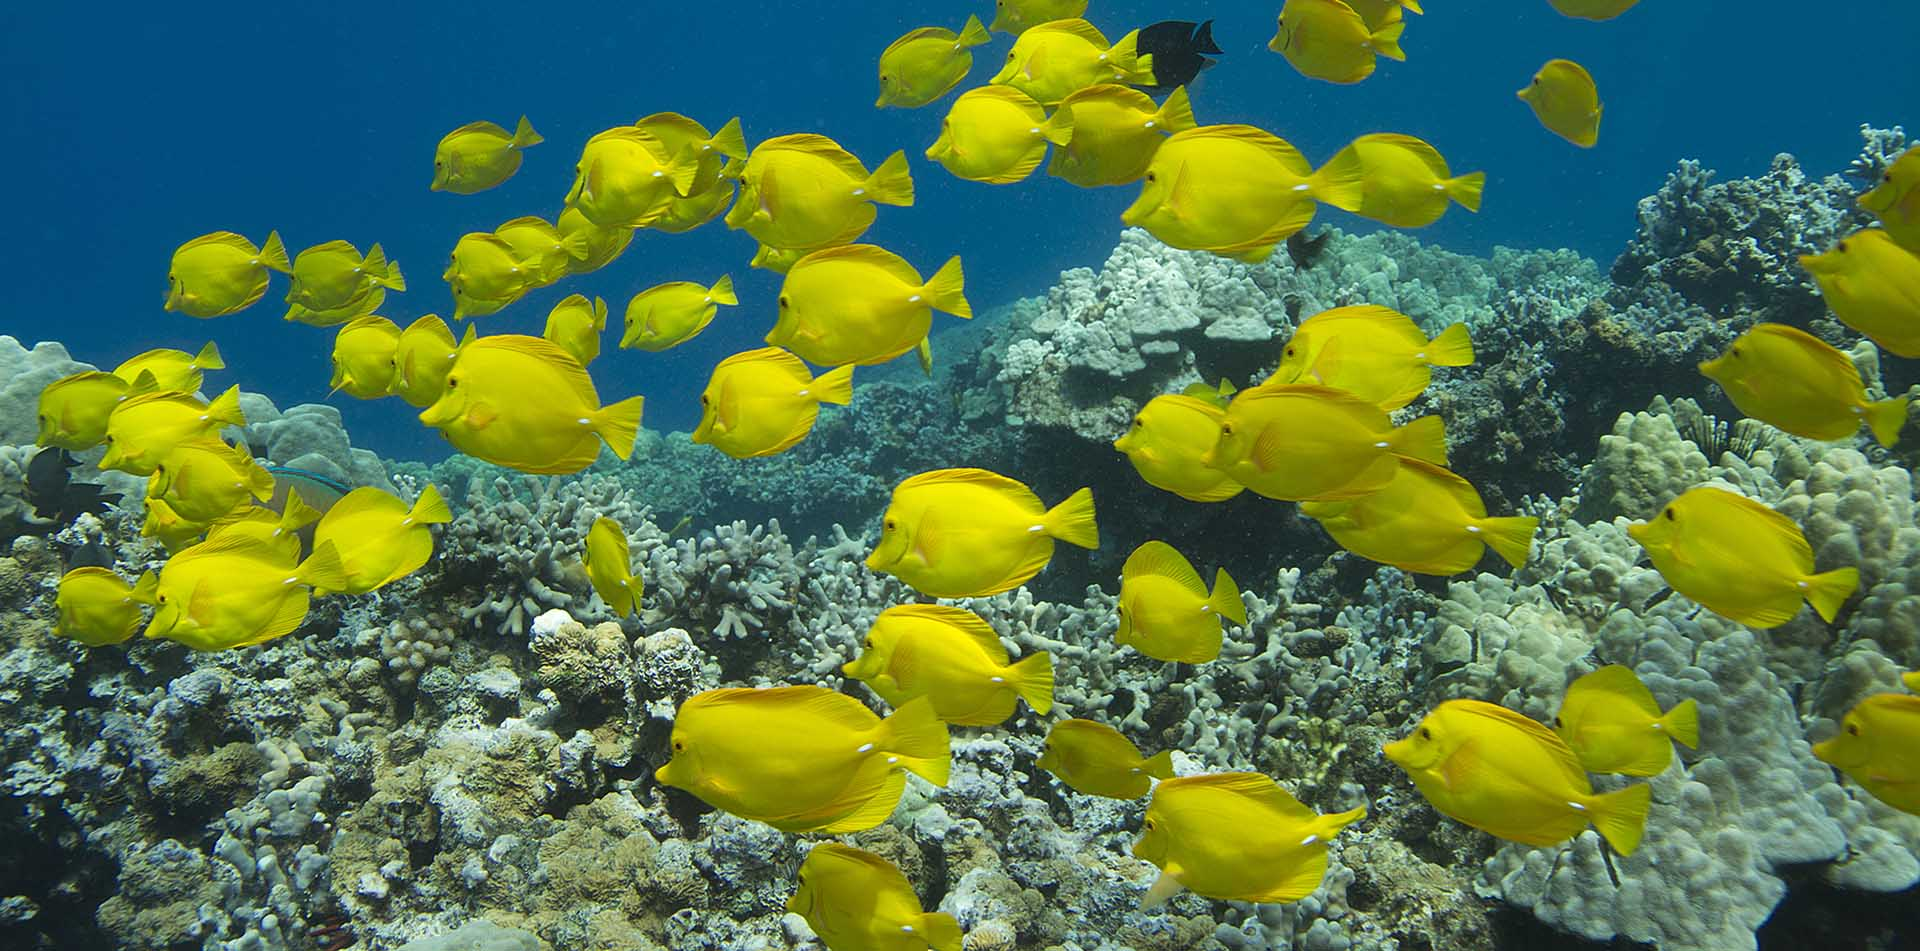 North America United States Hawaii Yellow Tang fish coral reef marine wildlife - luxury vacation destinations